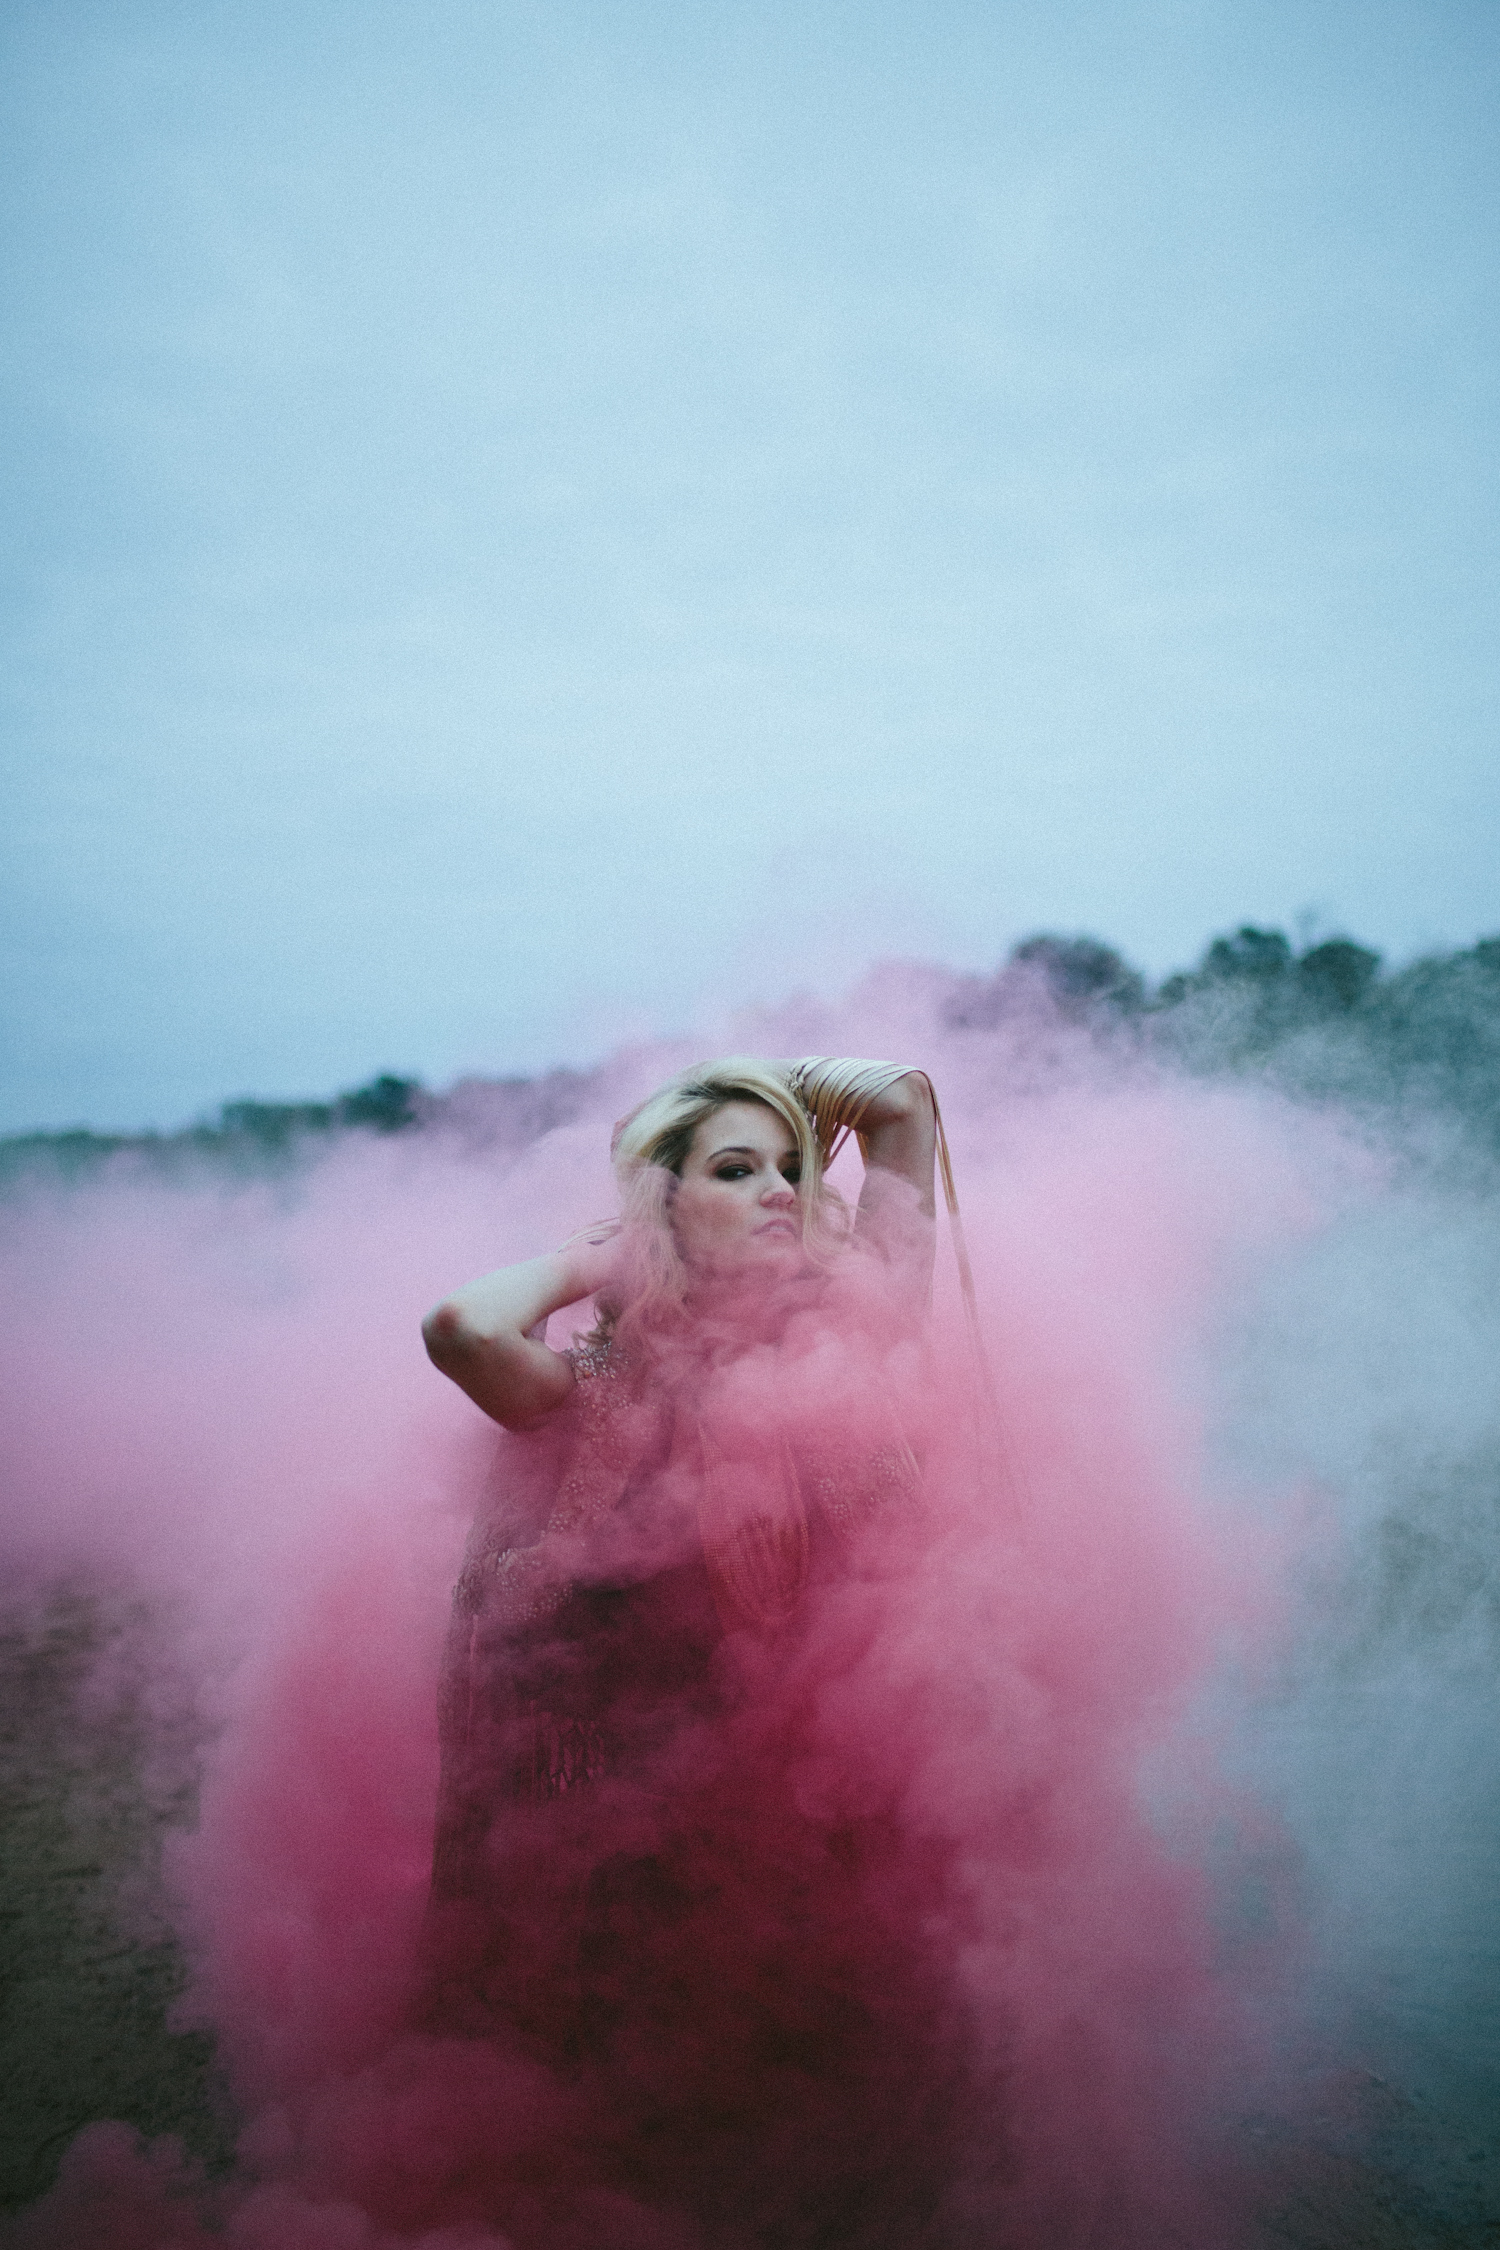 Paige-Newton-Imagery-fashion-photographer-colored-smoke-editorial.jpg